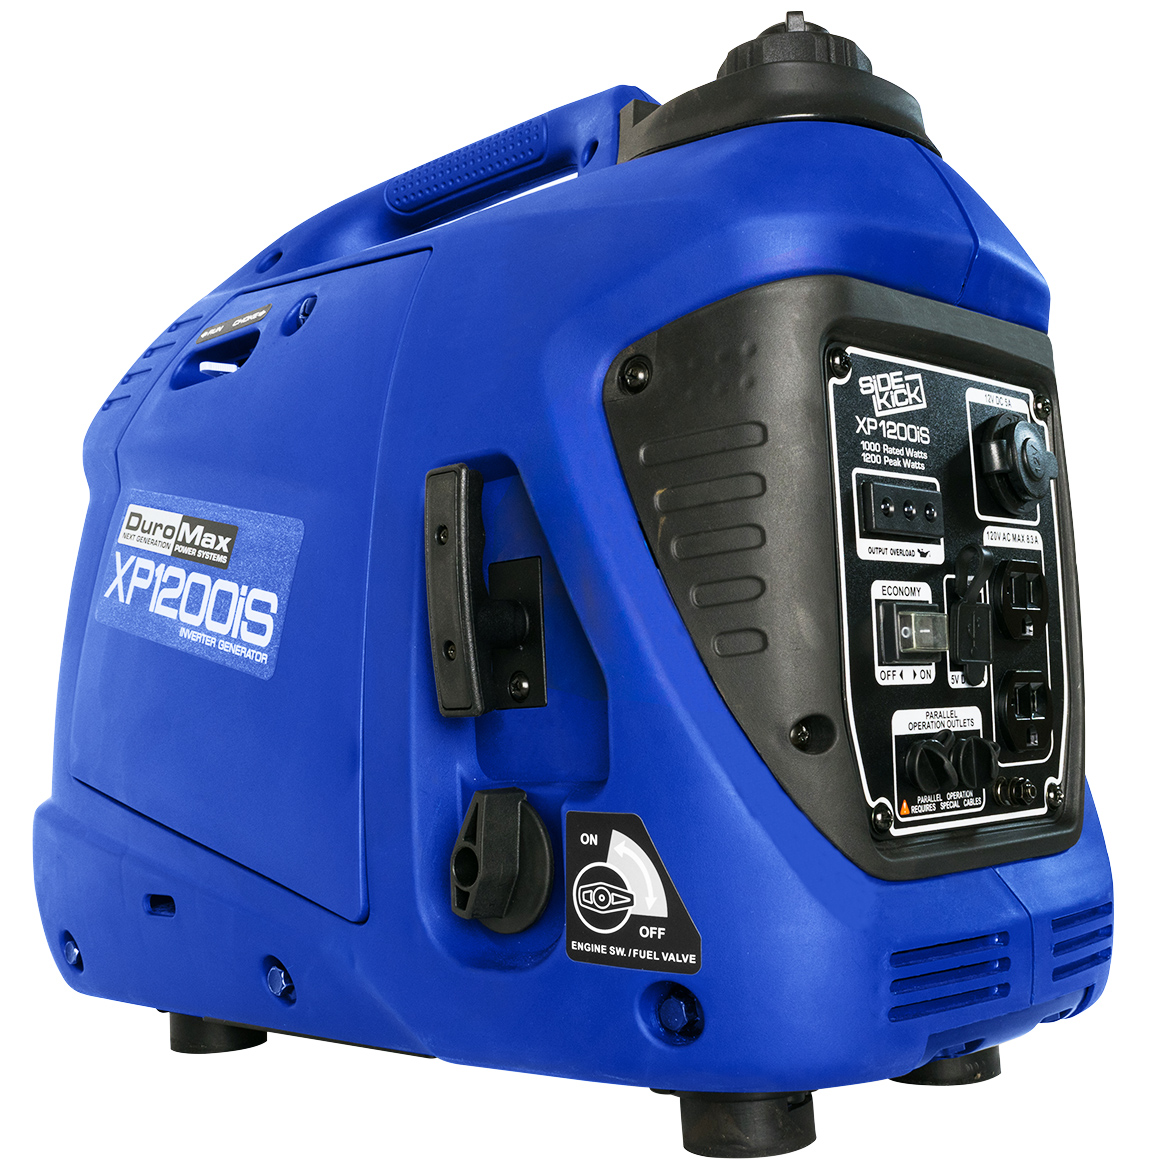 Click here to buy DuroMax XP1200iS 1,200 Watt Portable Digital Inverter Gas Powered Generator.